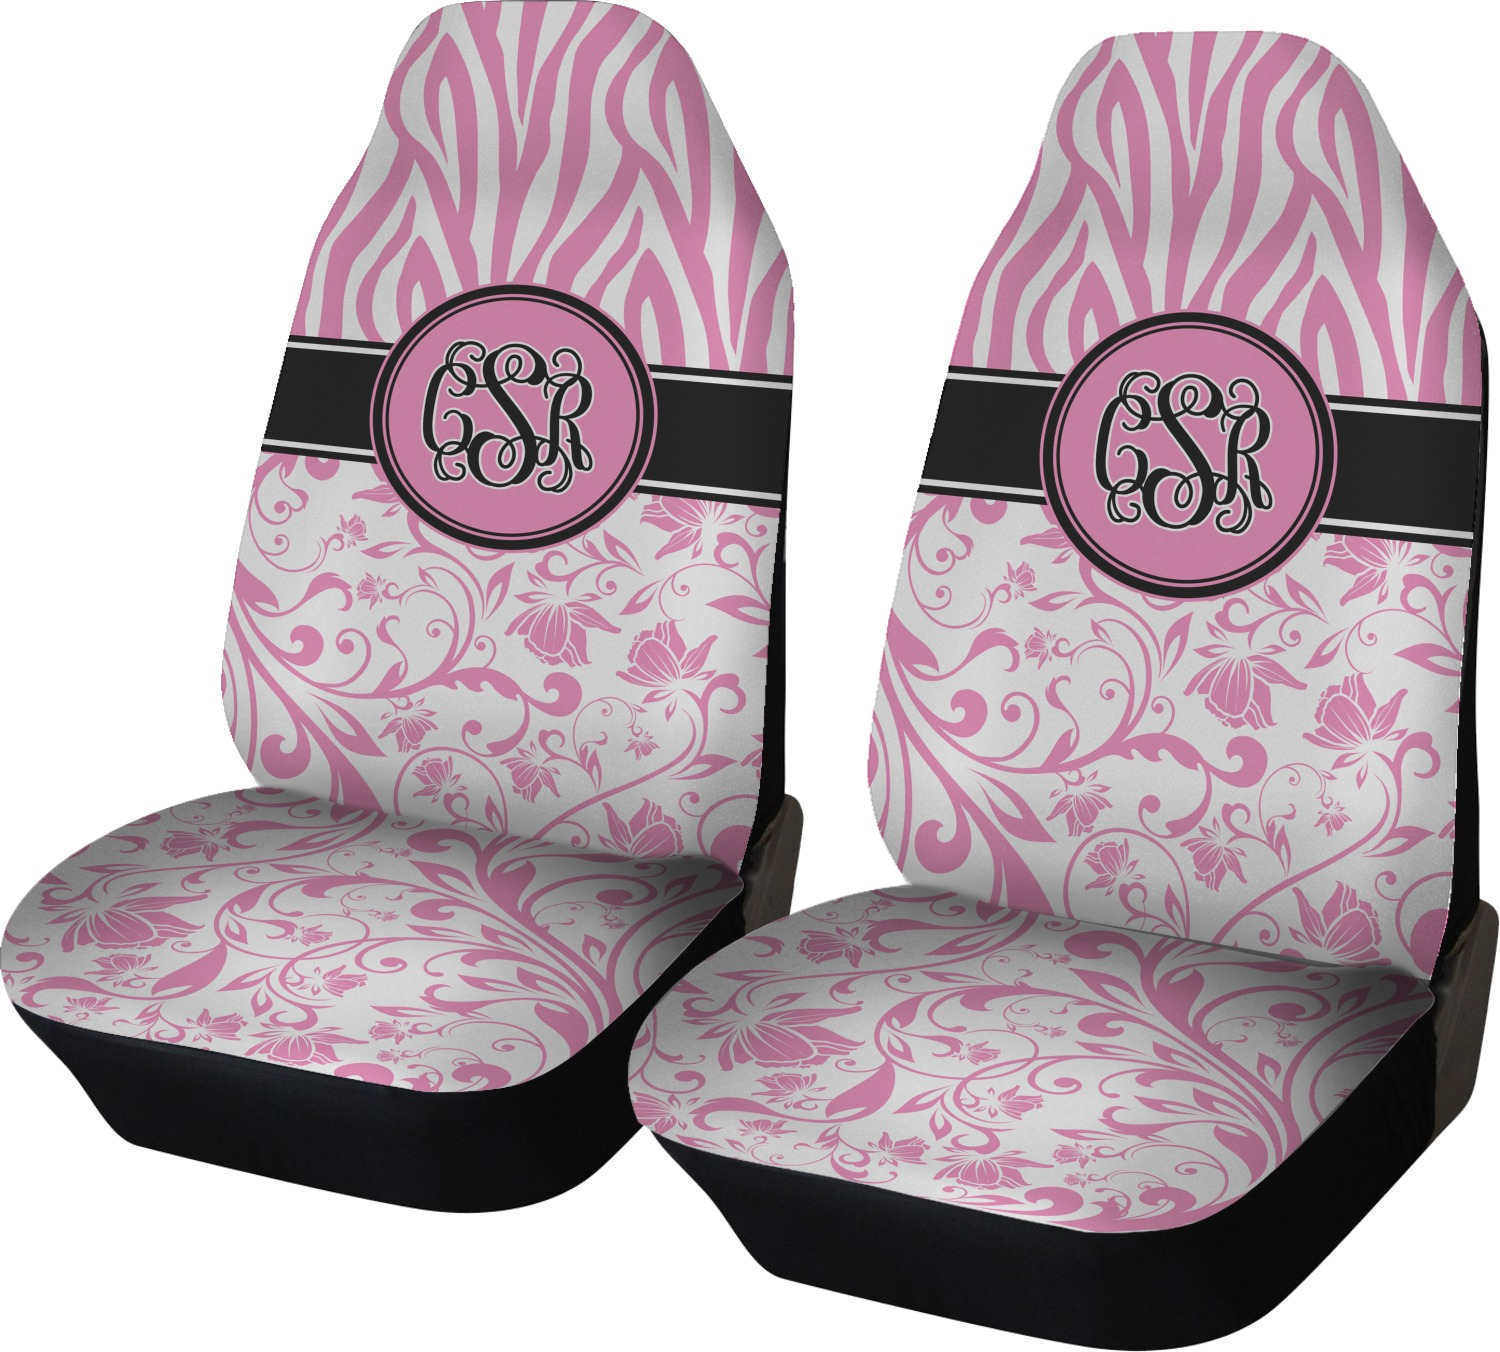 Zebra Amp Floral Car Seat Covers Set Of Two Personalized